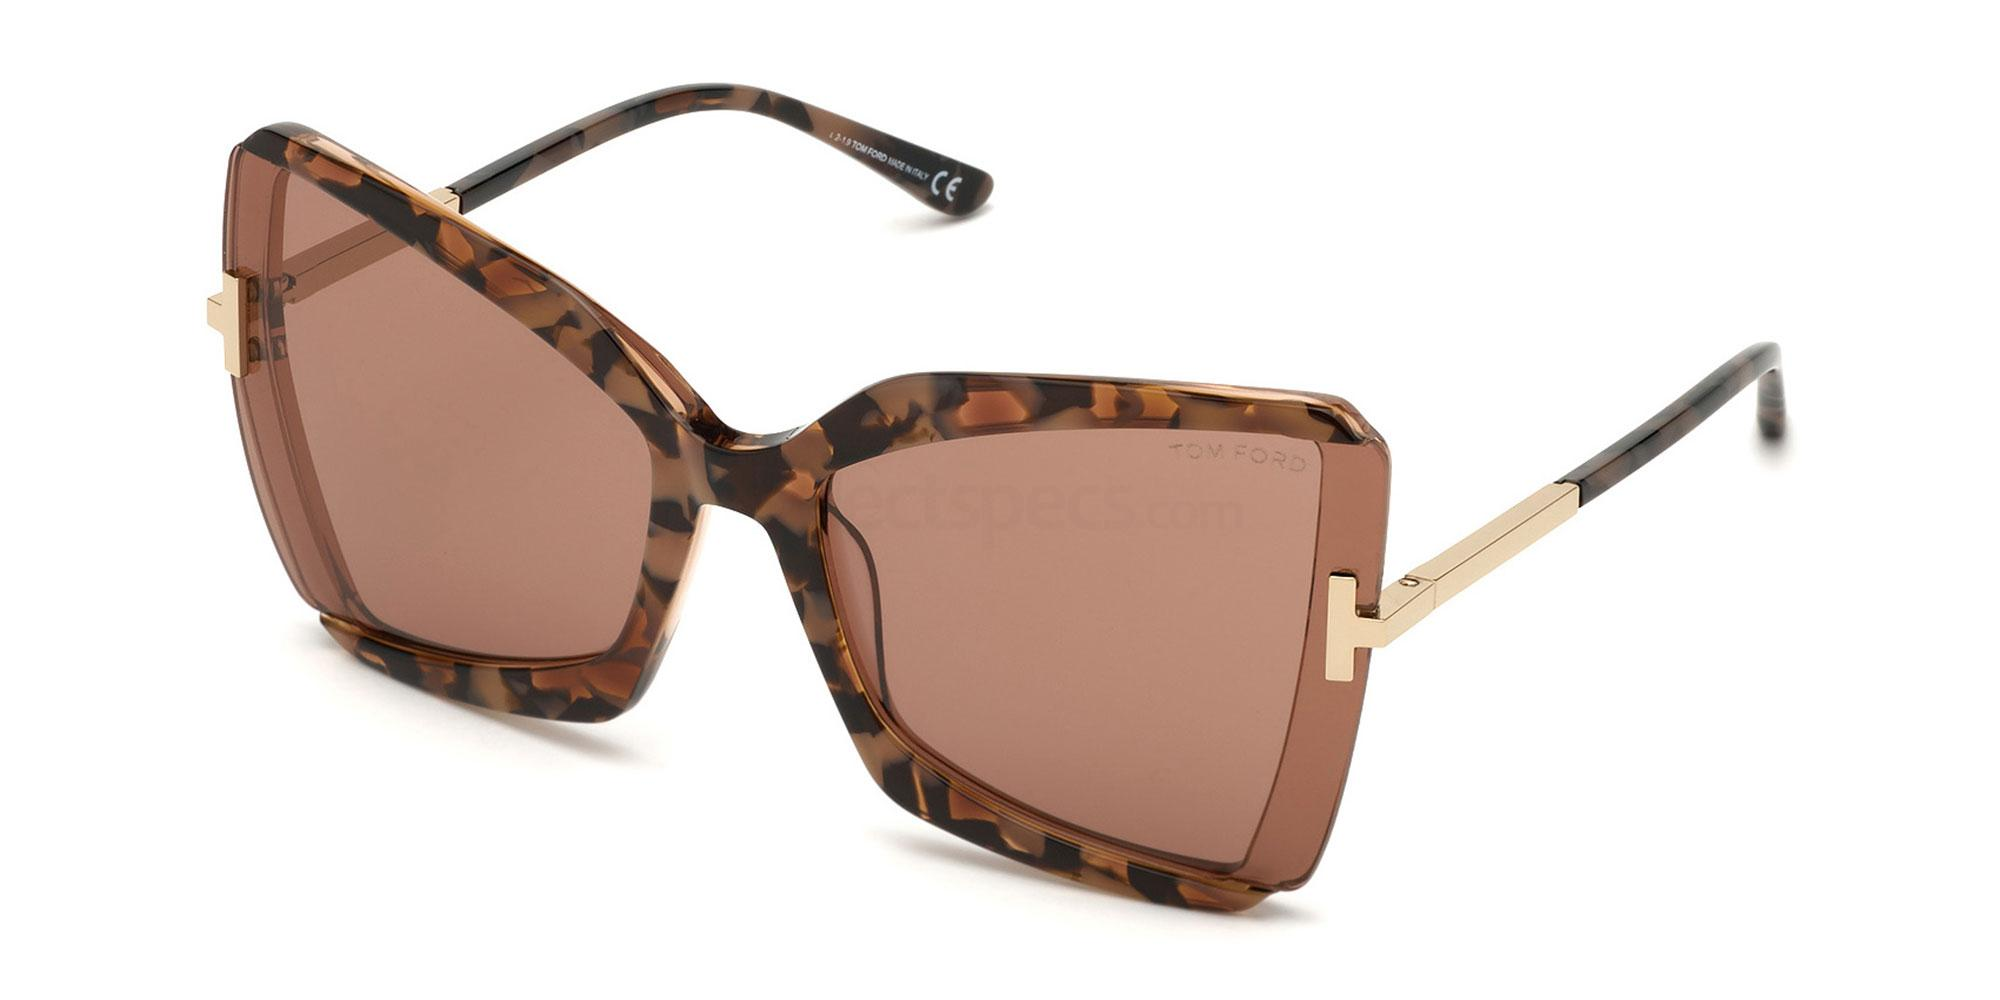 55Y FT0766 Sunglasses, Tom Ford